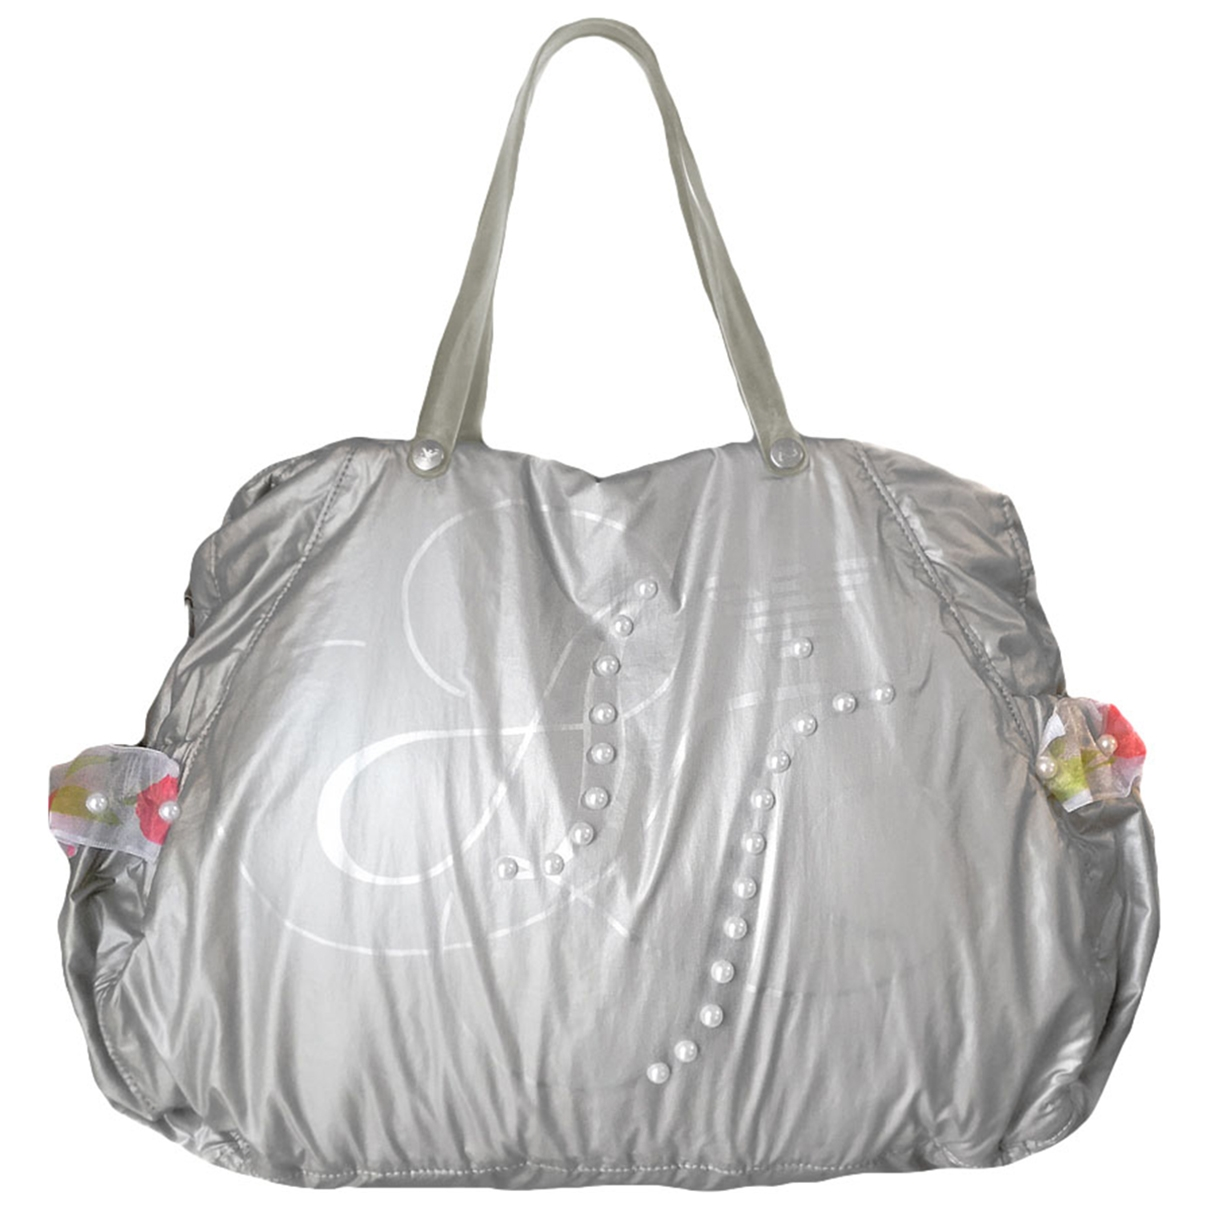 Armani Jeans \N Handtasche in  Silber Polyester